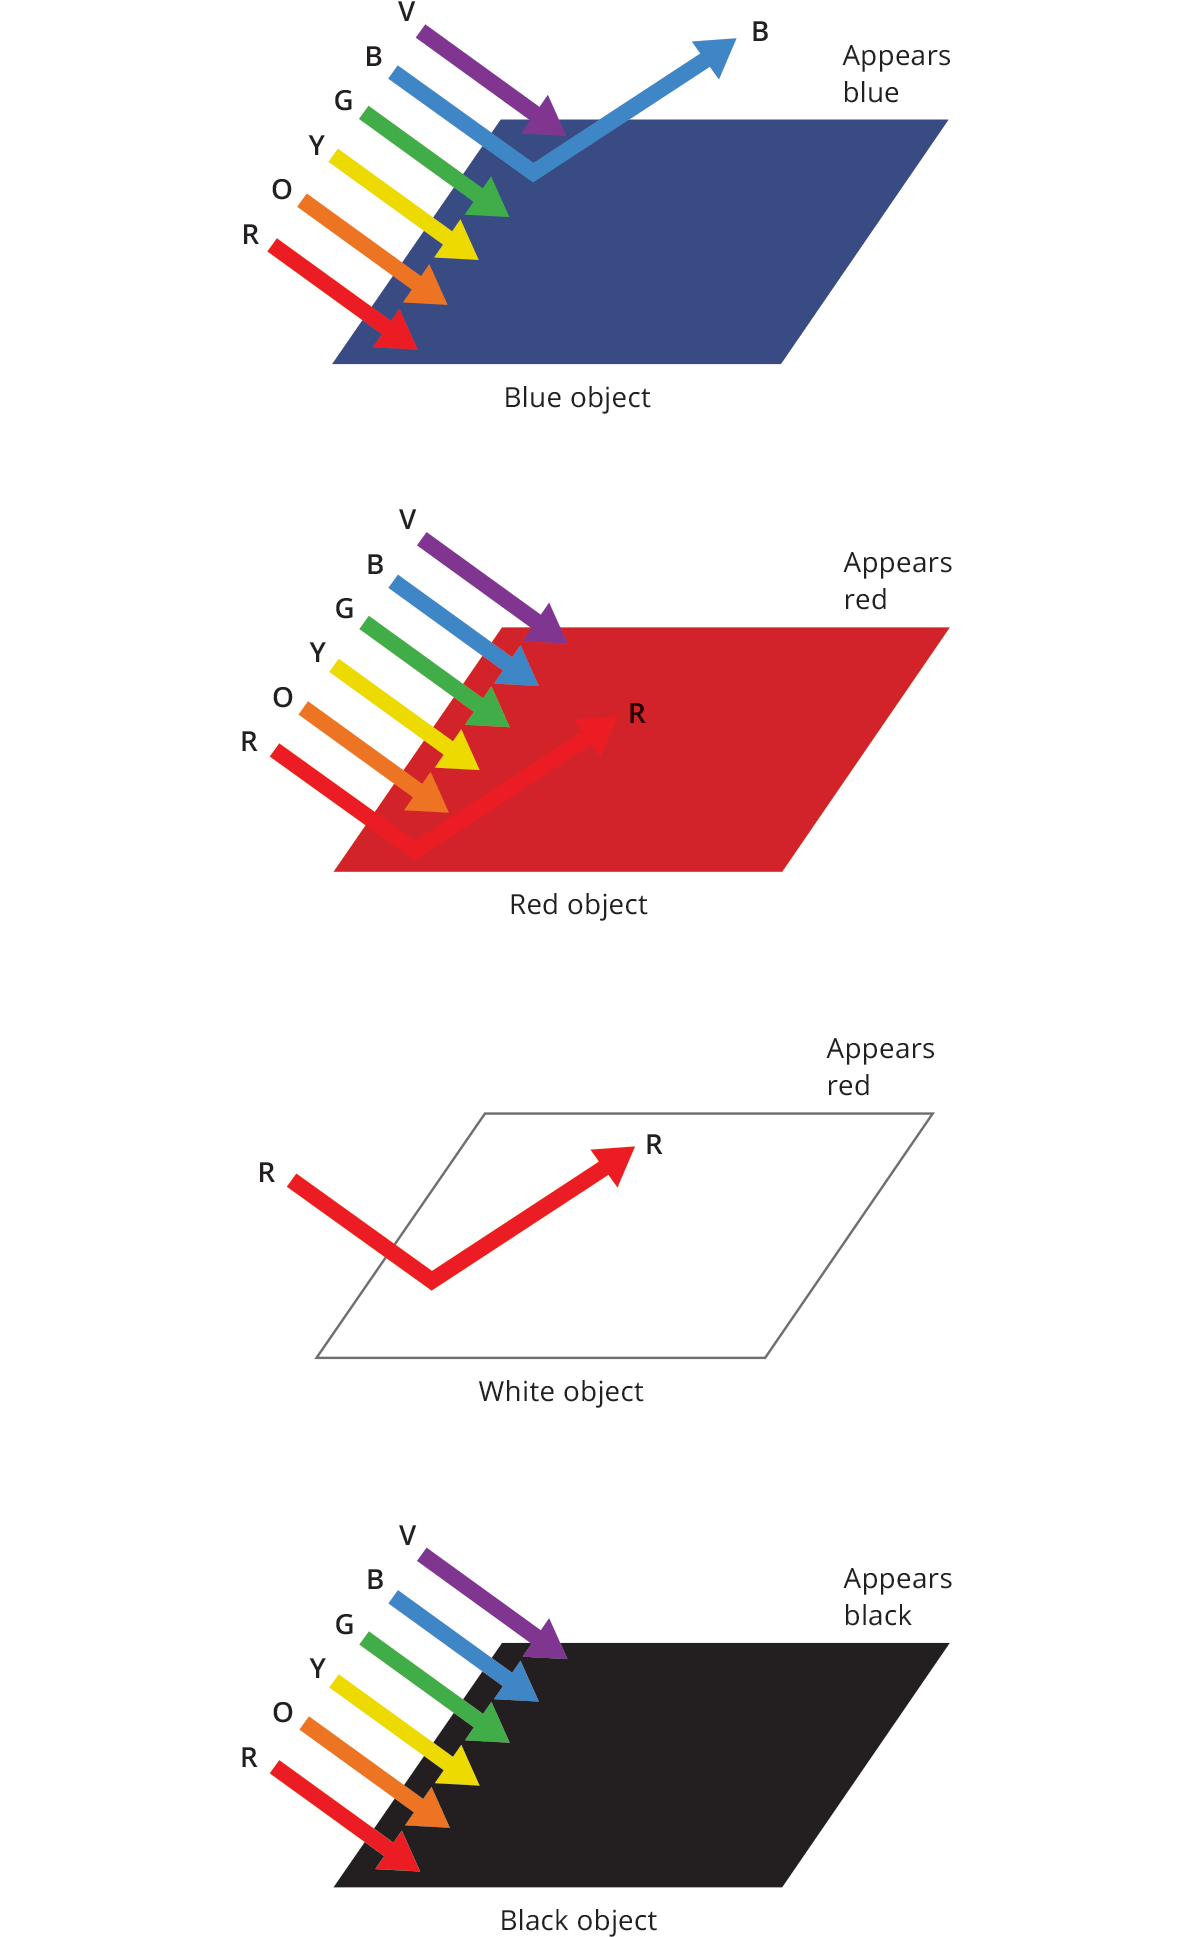 Relationship between object color and light color.